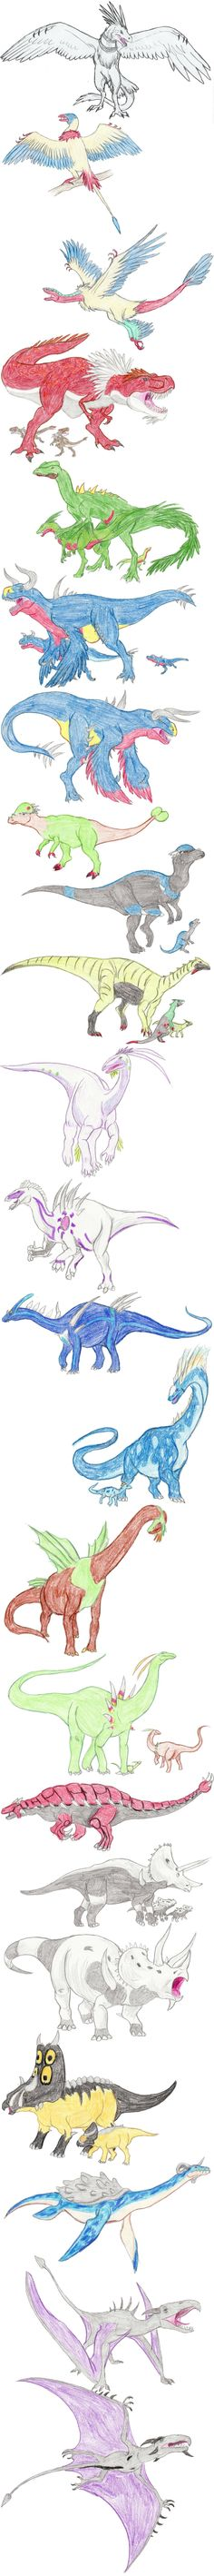 Dinosaur Pokemon by DragonlordRynn on deviantART...is it bad if I can't recognize some of these? :/